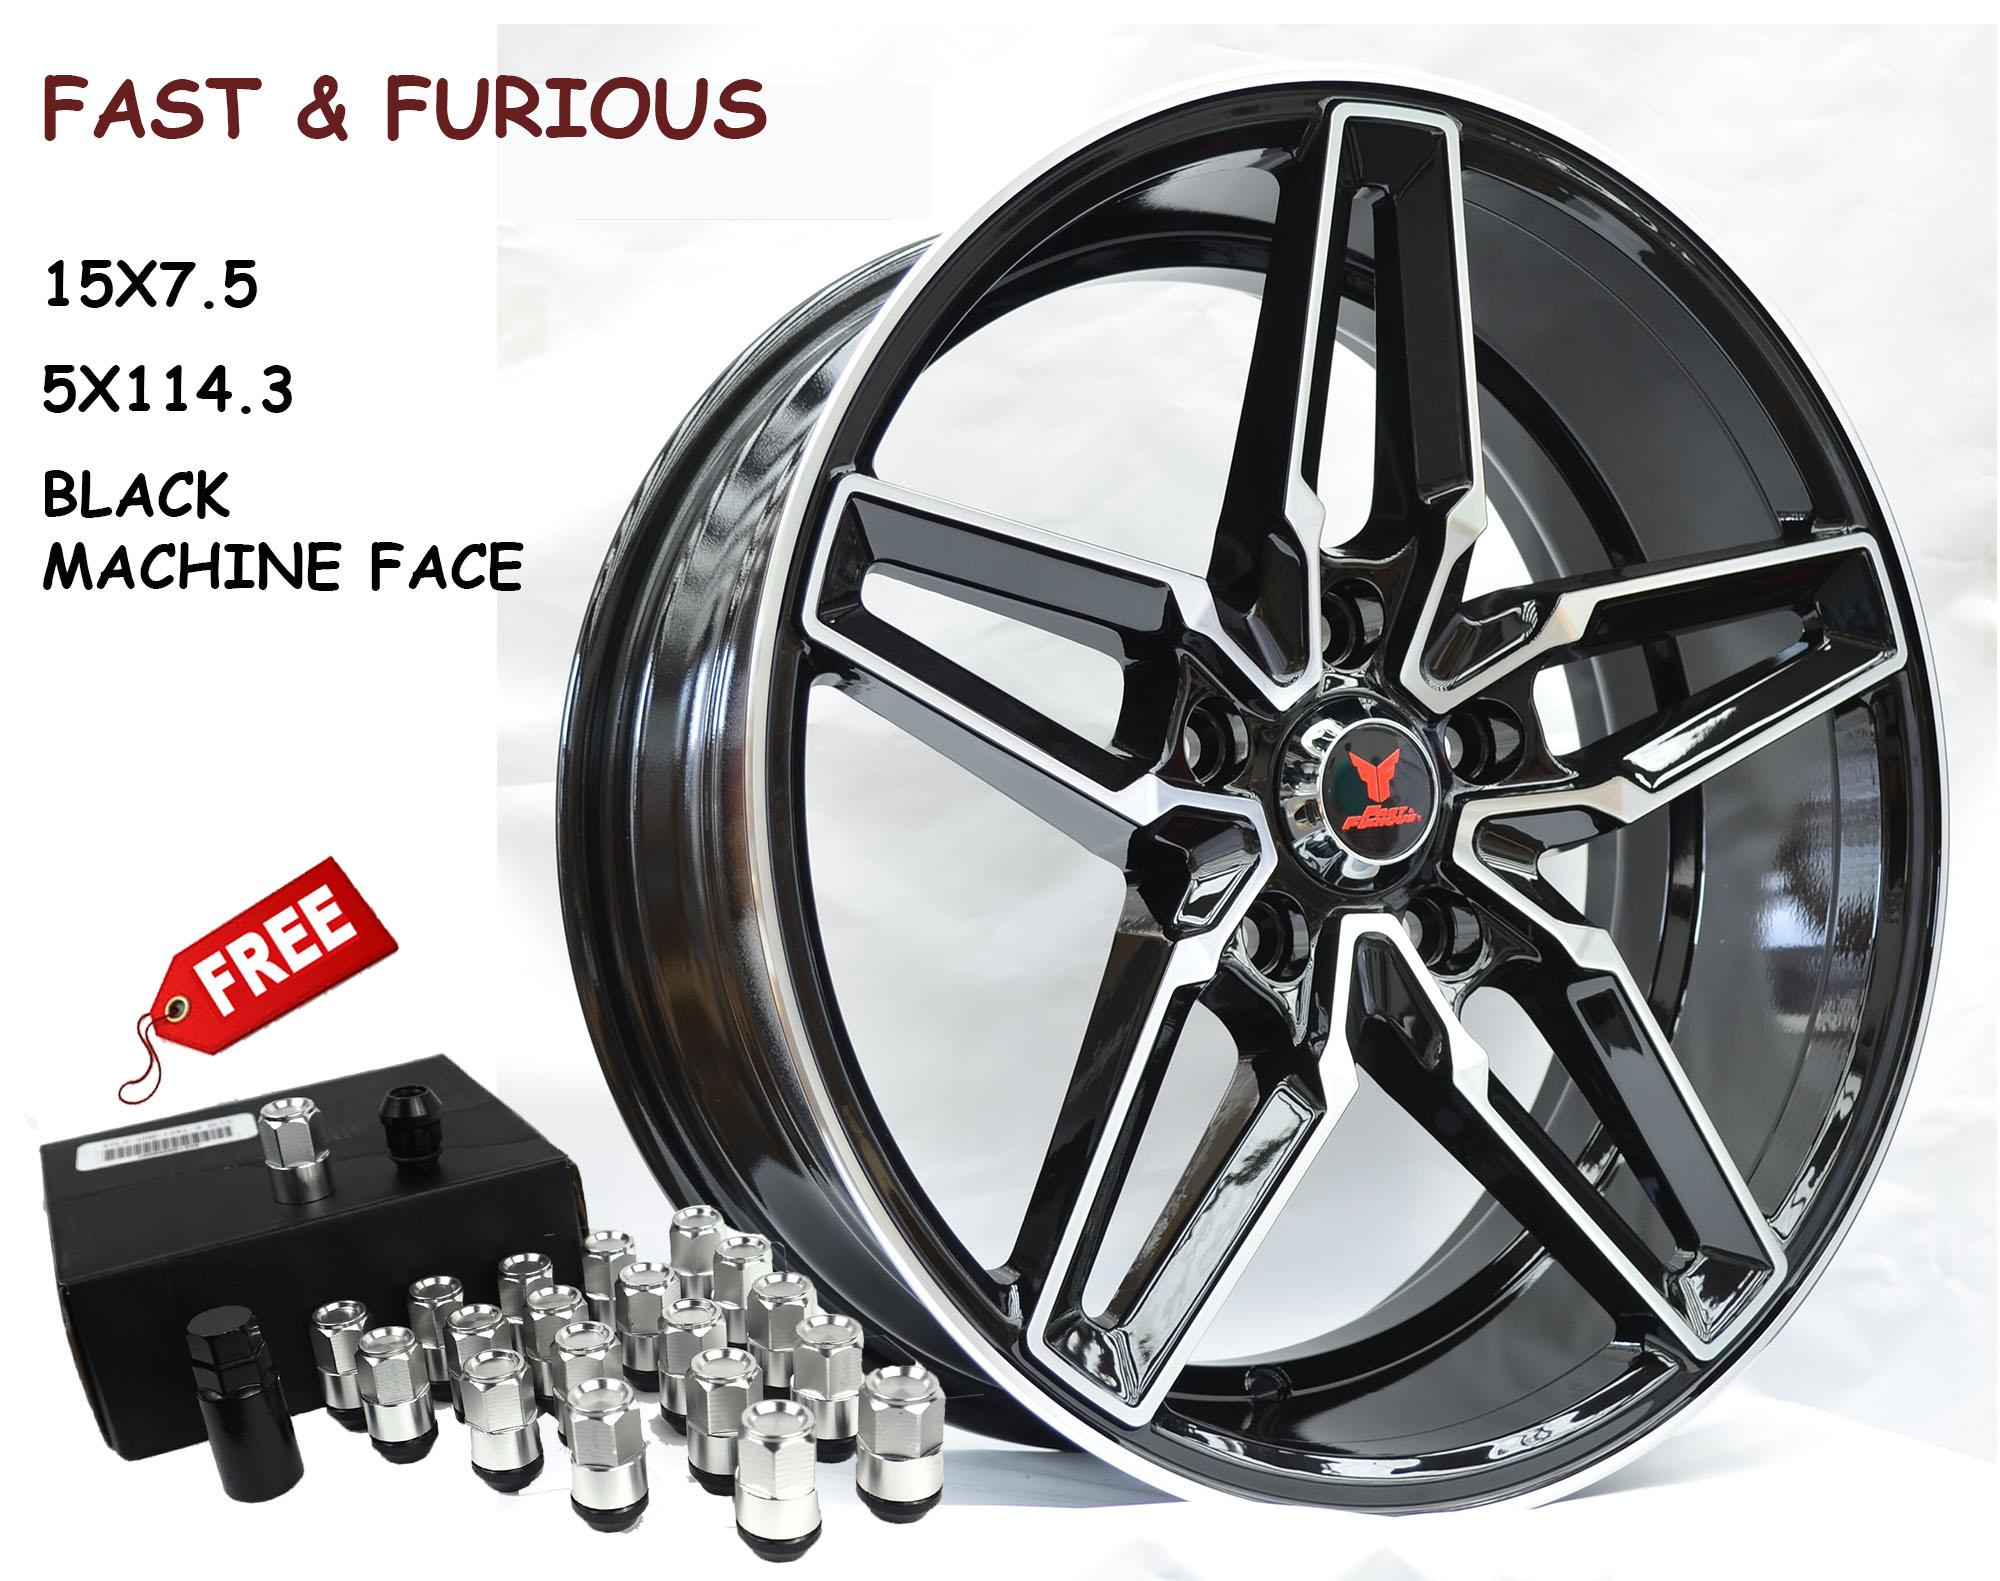 Tire Mags For Sale Car Rims Online Deals Prices In Philippines